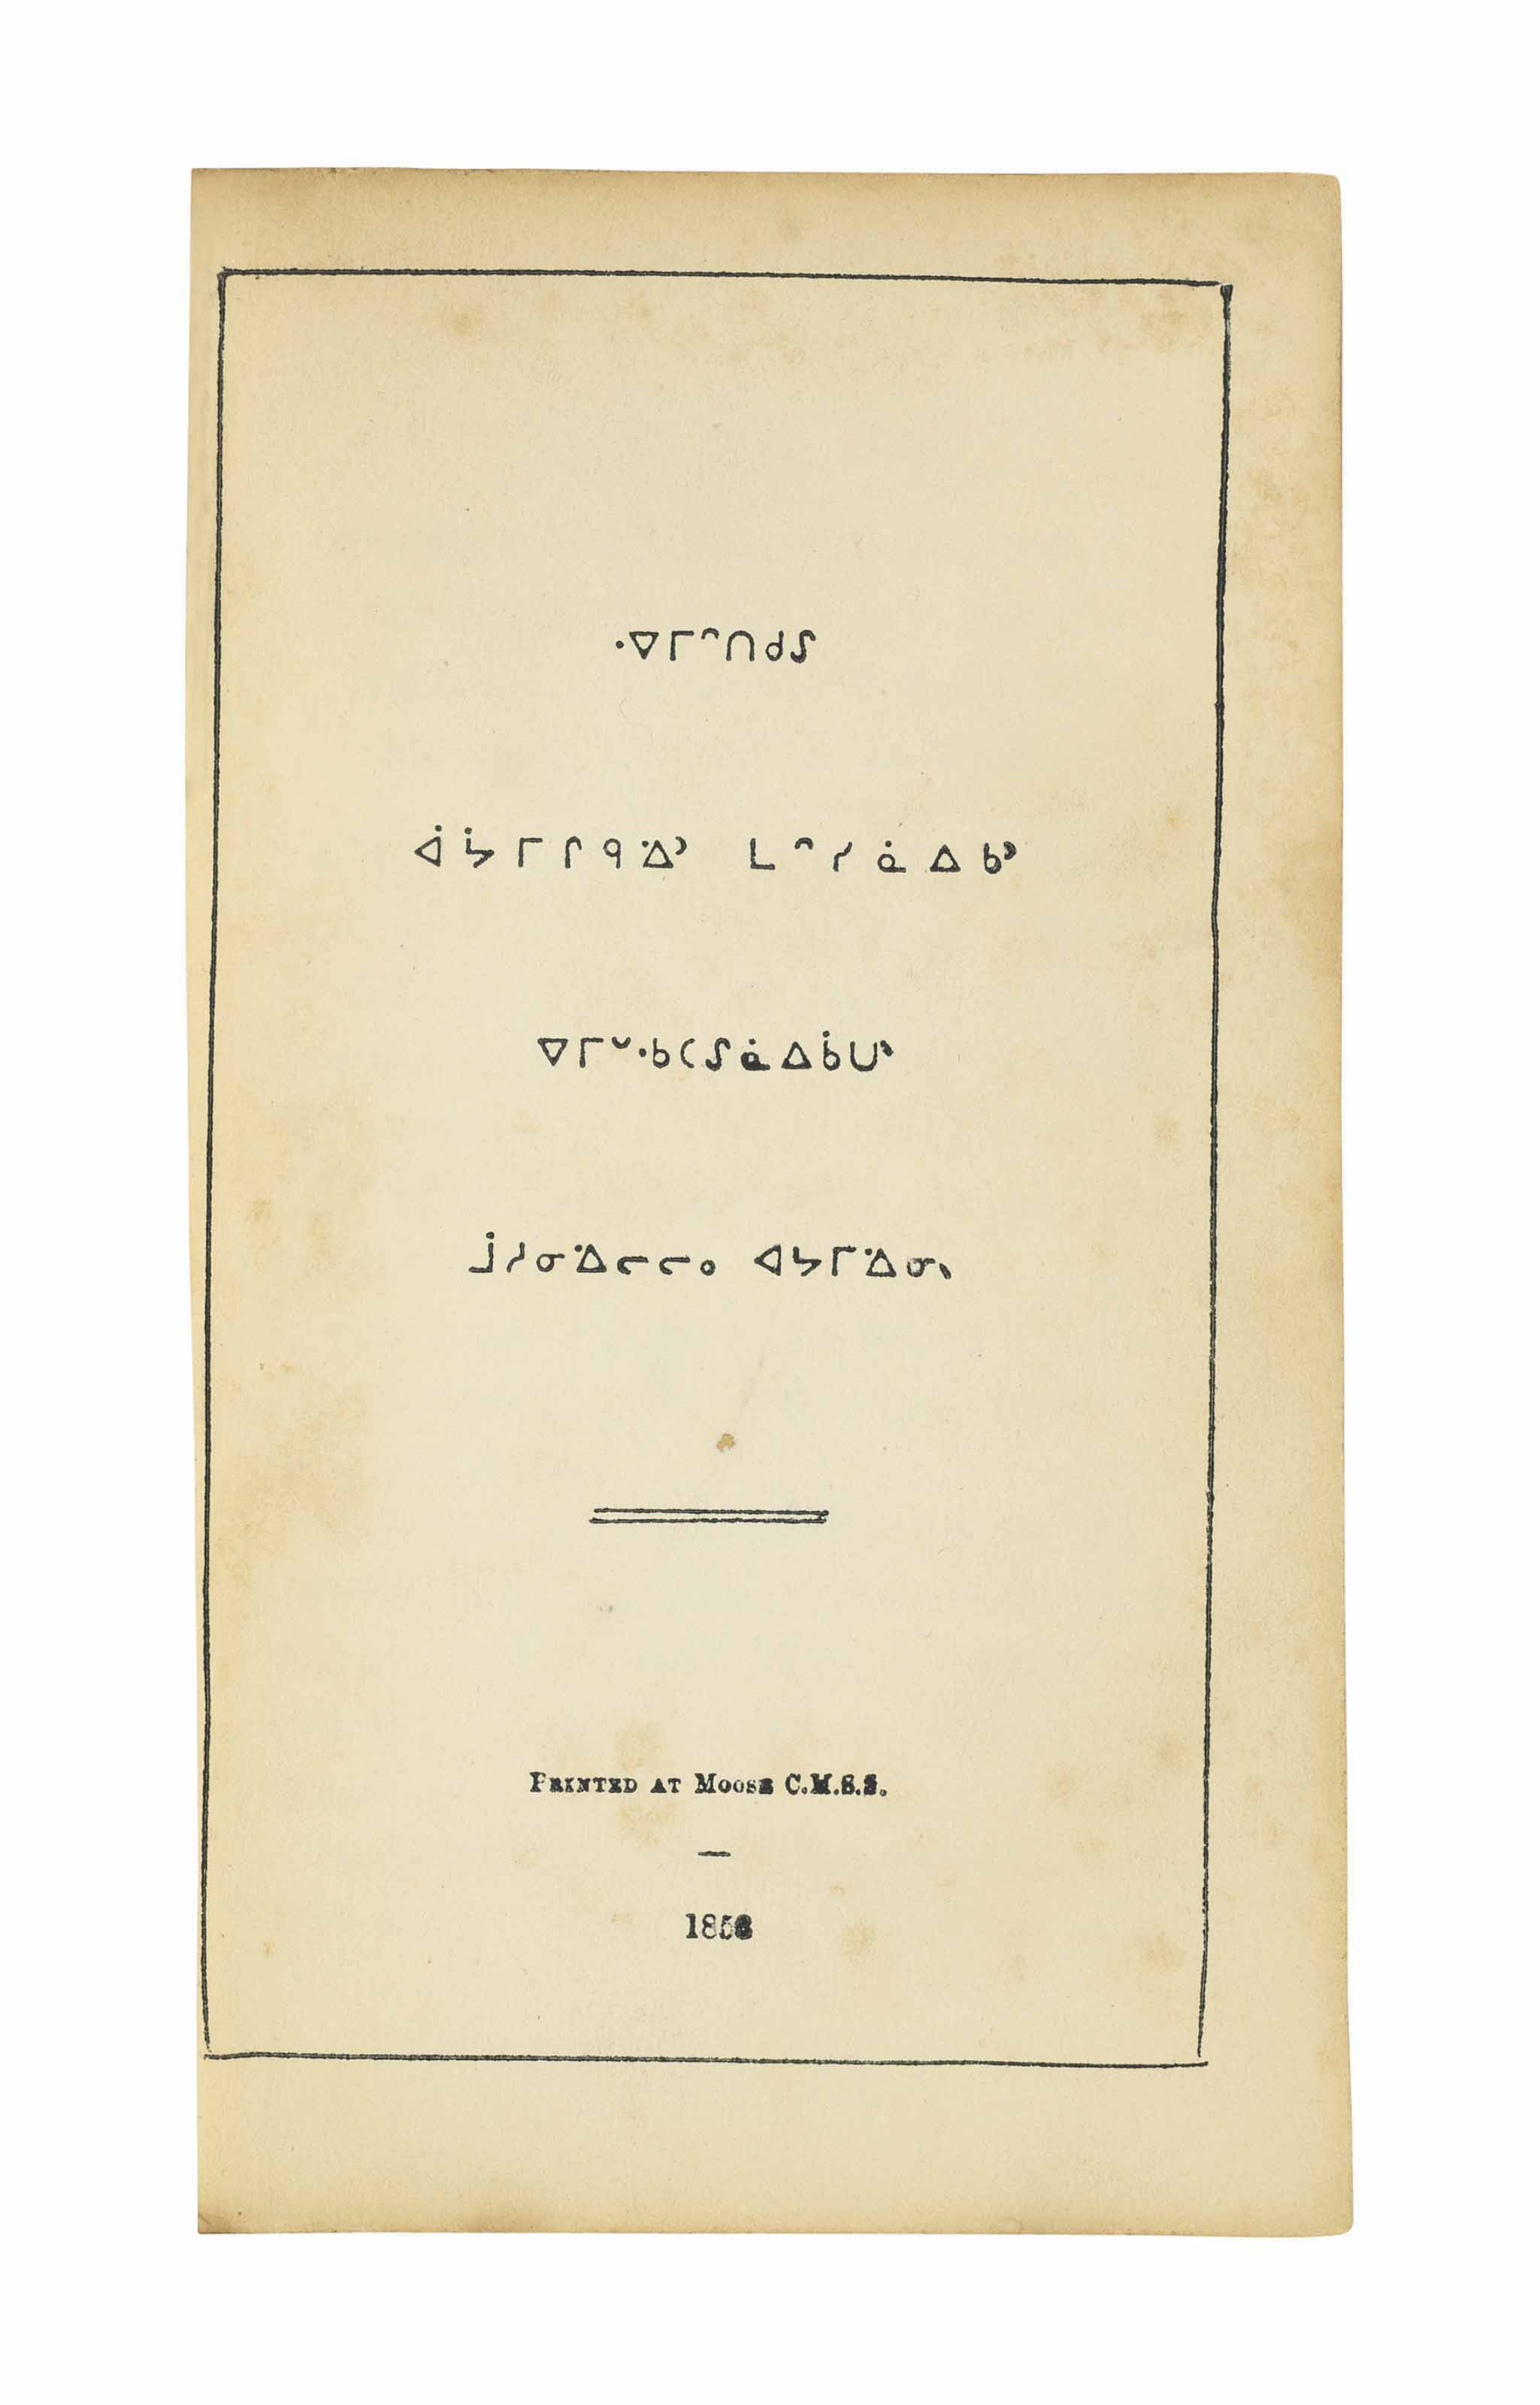 [HORDEN, John (1828-1893, translator).] Portions of the Book of Common Prayer [title in Cree]. Church Missionary Society Settlement, Moose, Ontario: 1853[-1854].